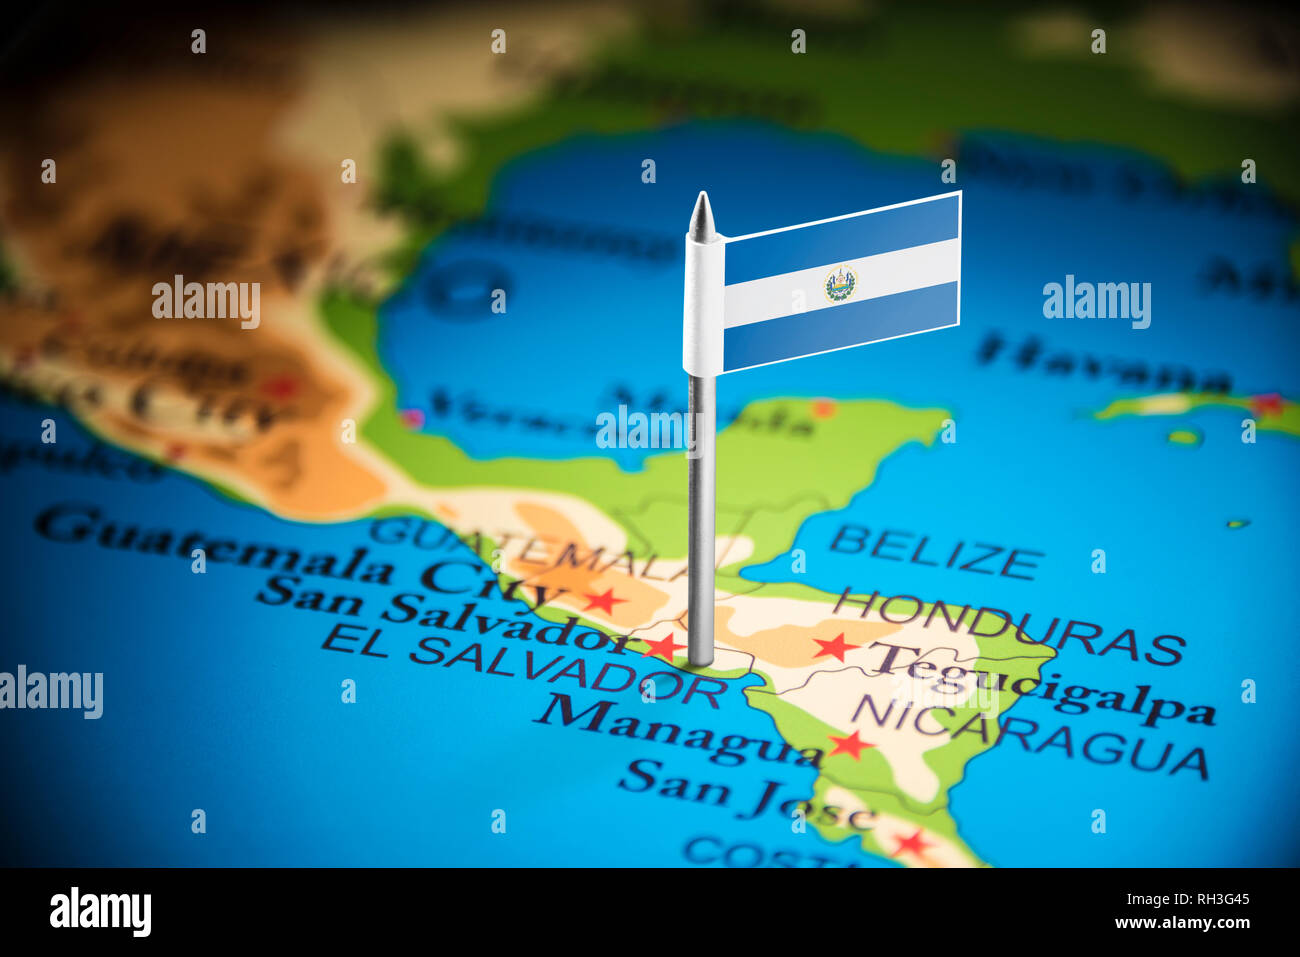 Salvador marked with a flag on the map - Stock Image